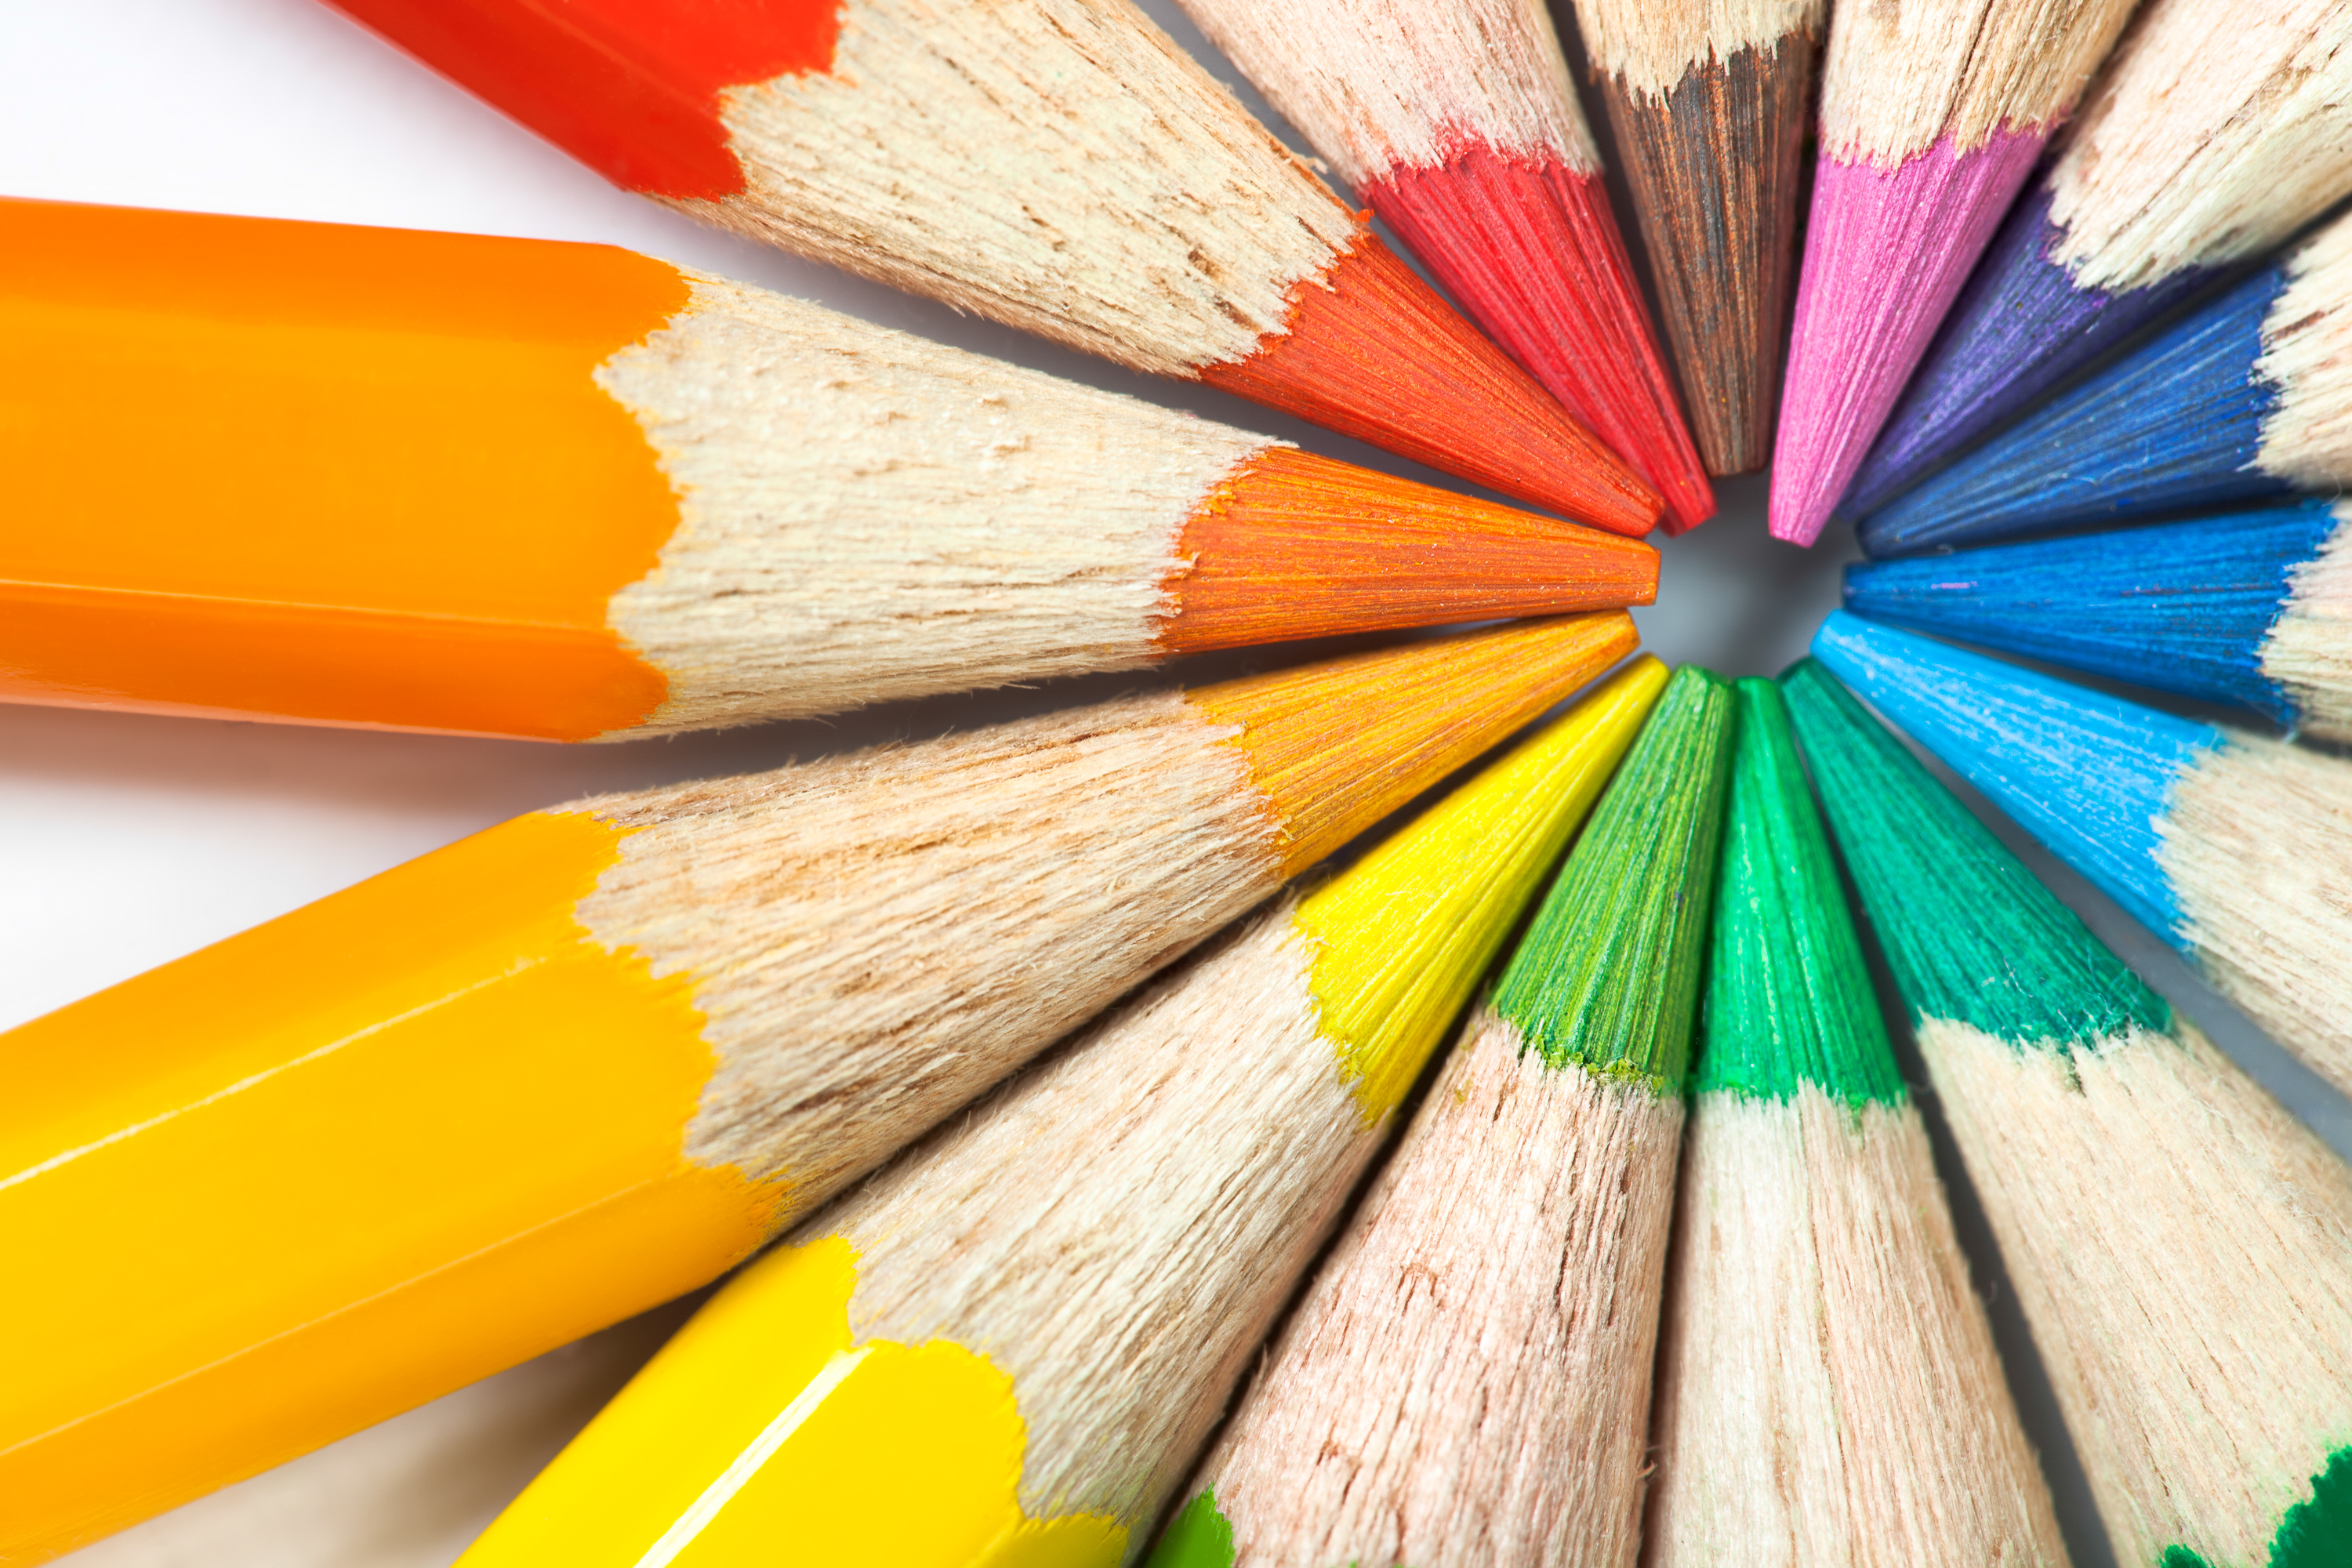 Colored pencils, Arrangement, Rainbow, Office, Orange, HQ Photo